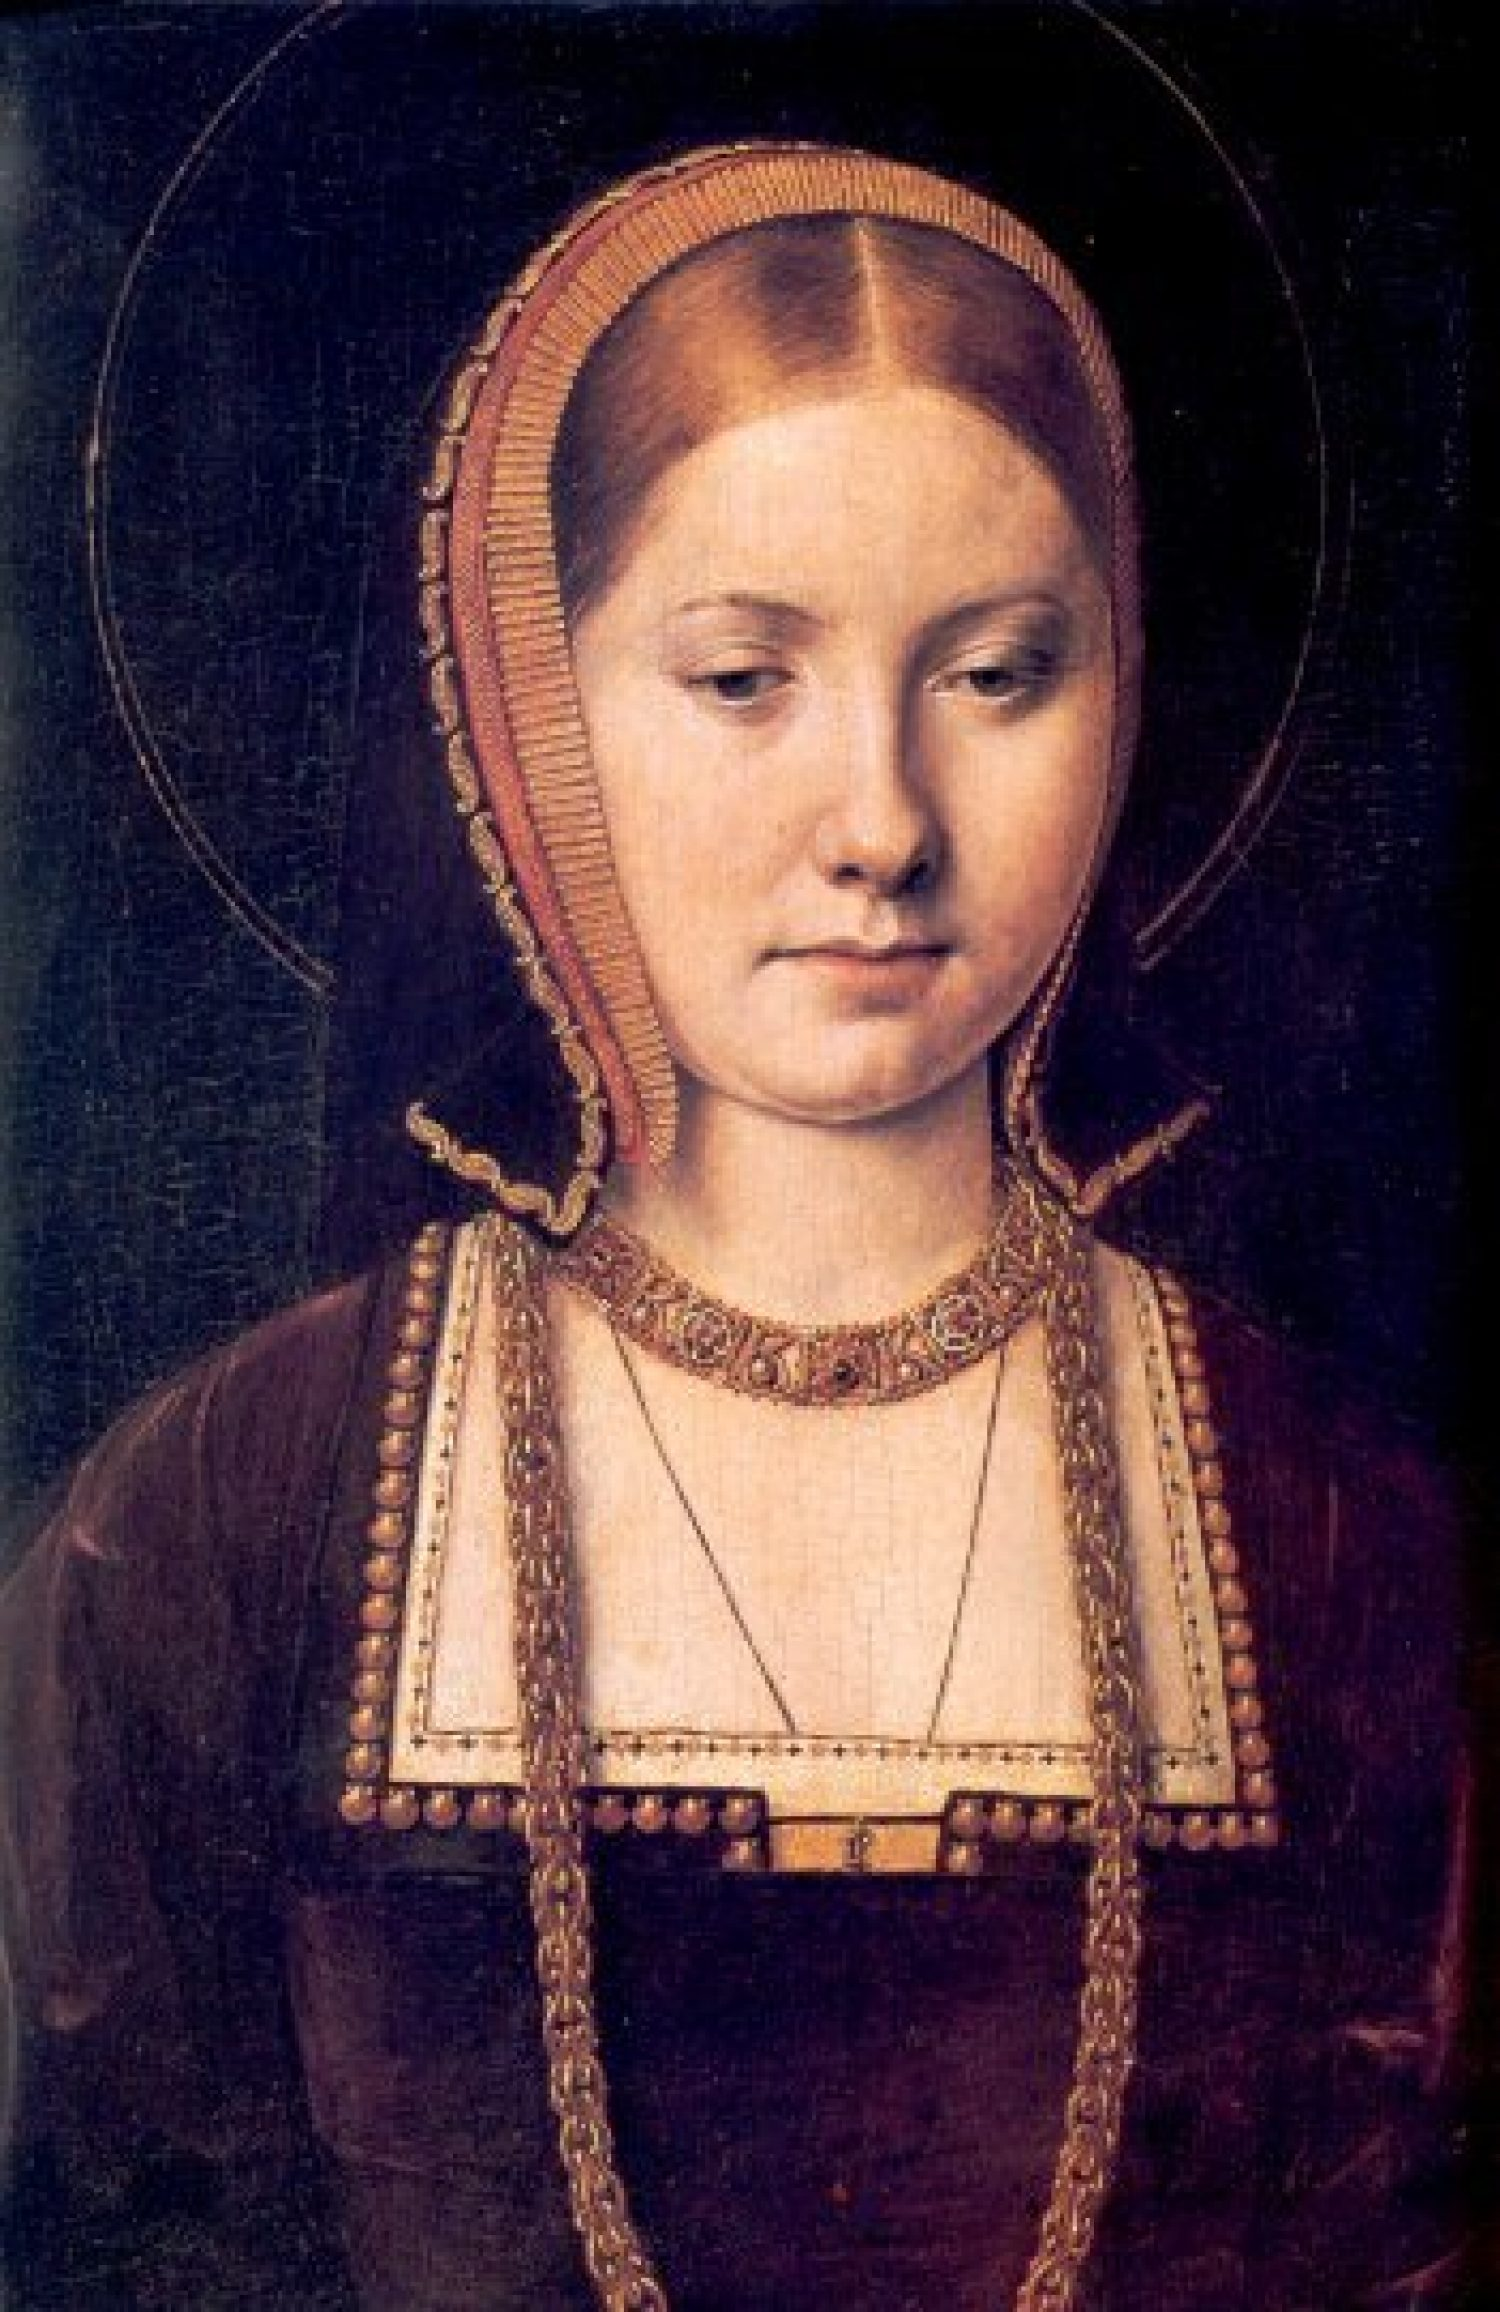 Head and shoulders portrait of Katherine Parr